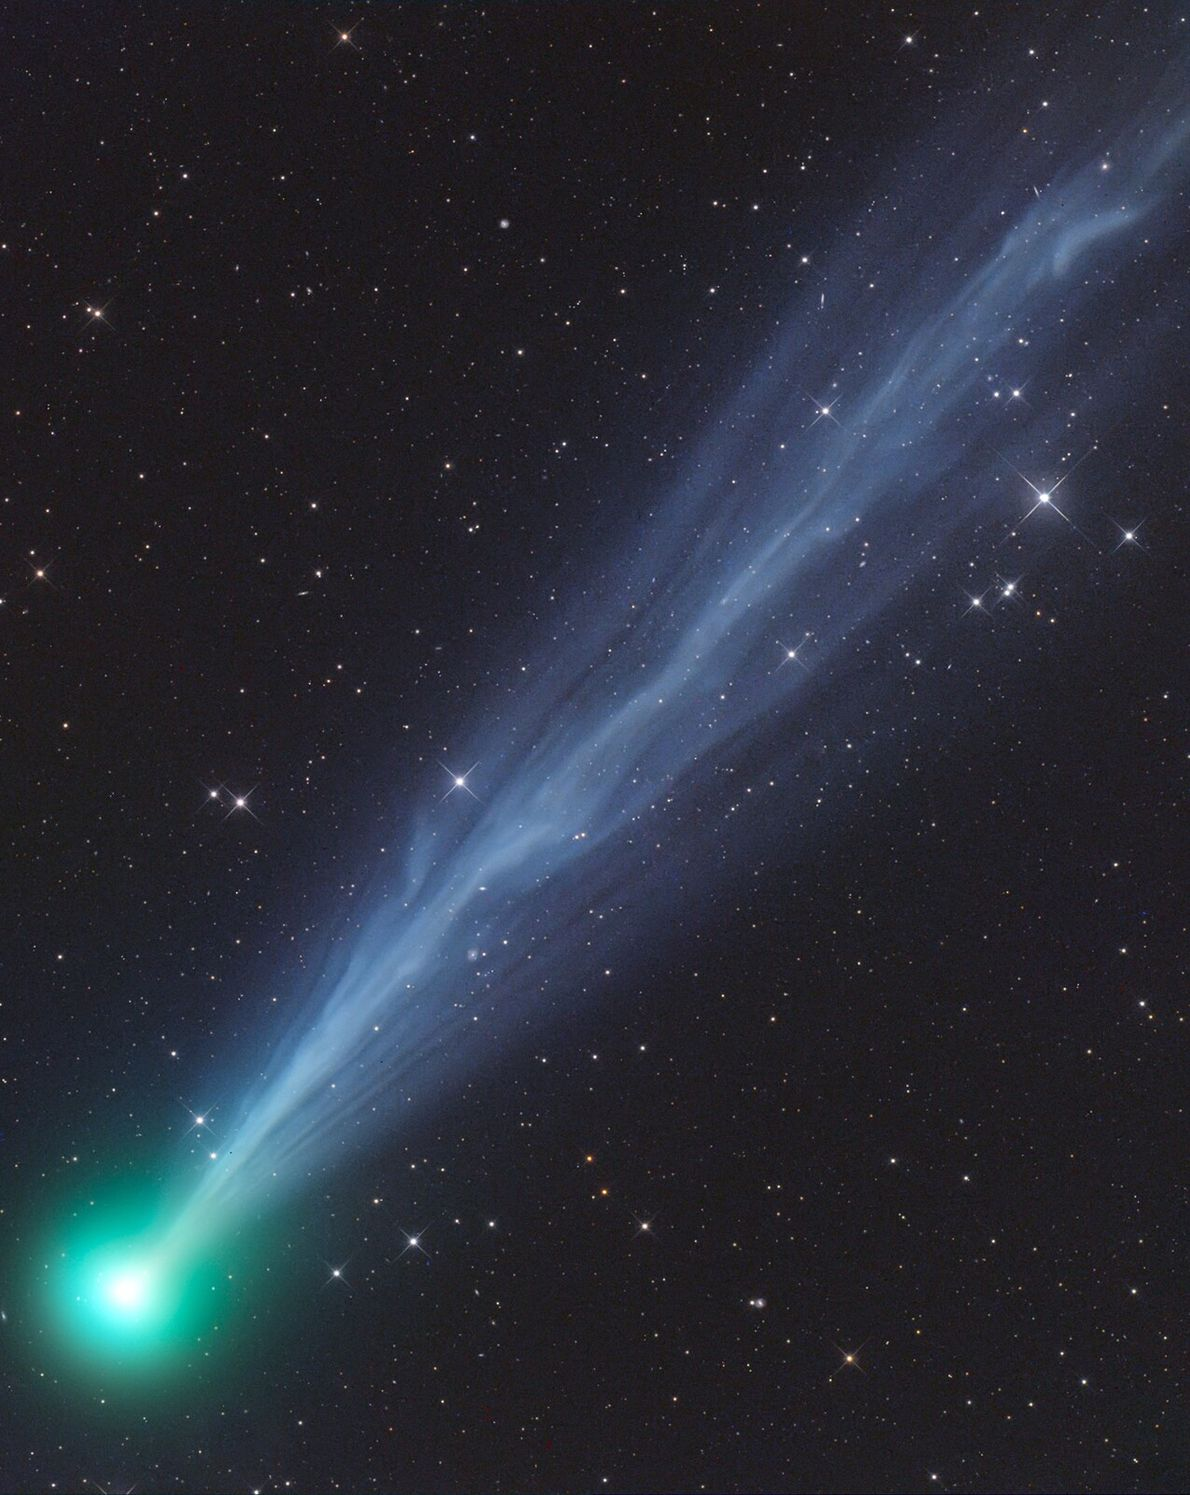 Made from 21 hours of total exposure, this image shows the comet 2020F8 SWAN, another highlight of ...